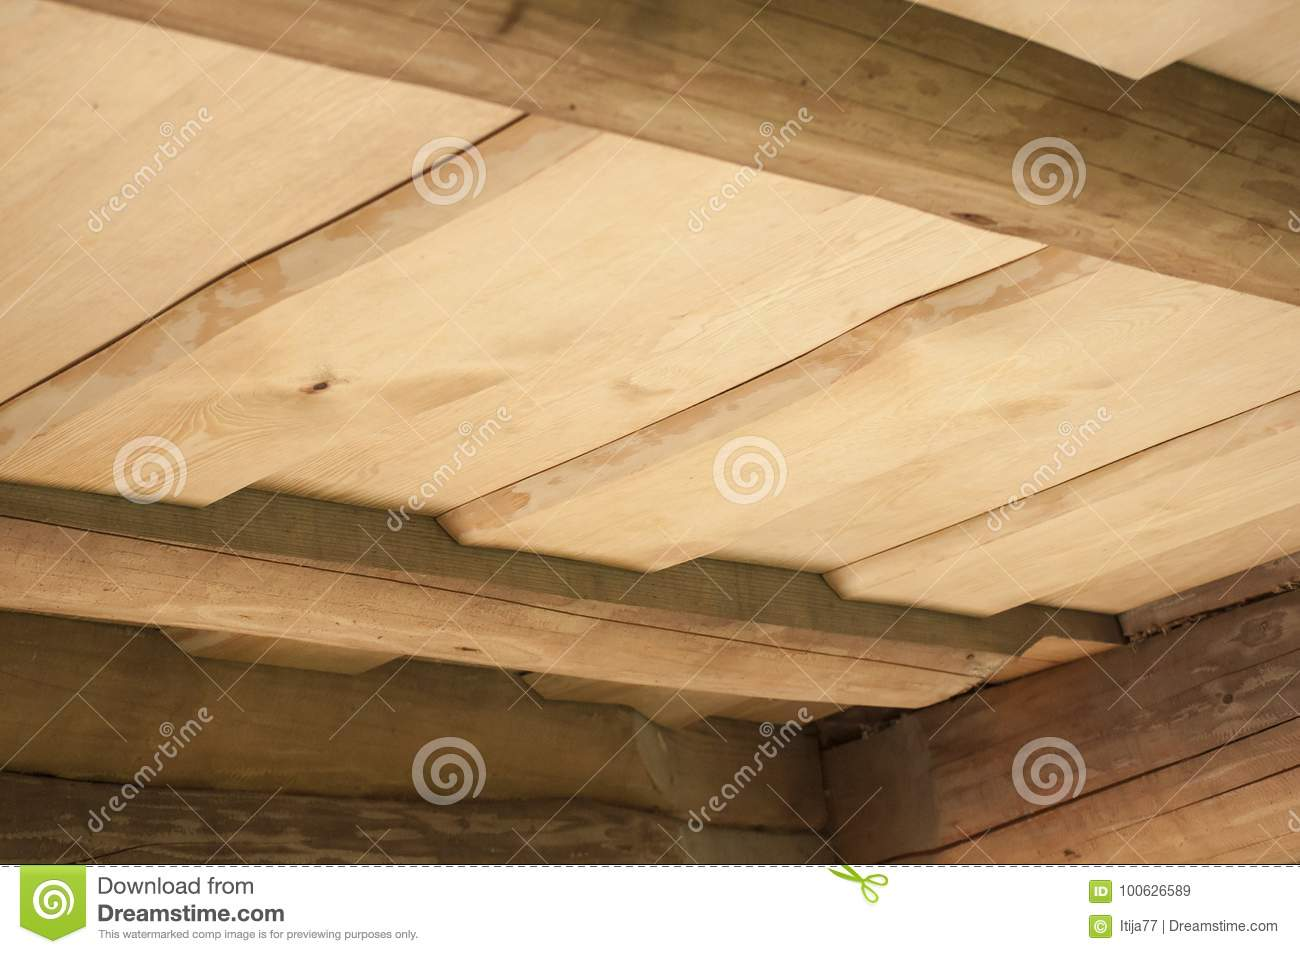 wood manufacturers false size armstrong uk over of painted full wooden drywall ceilings vinyl plank system planks ceiling